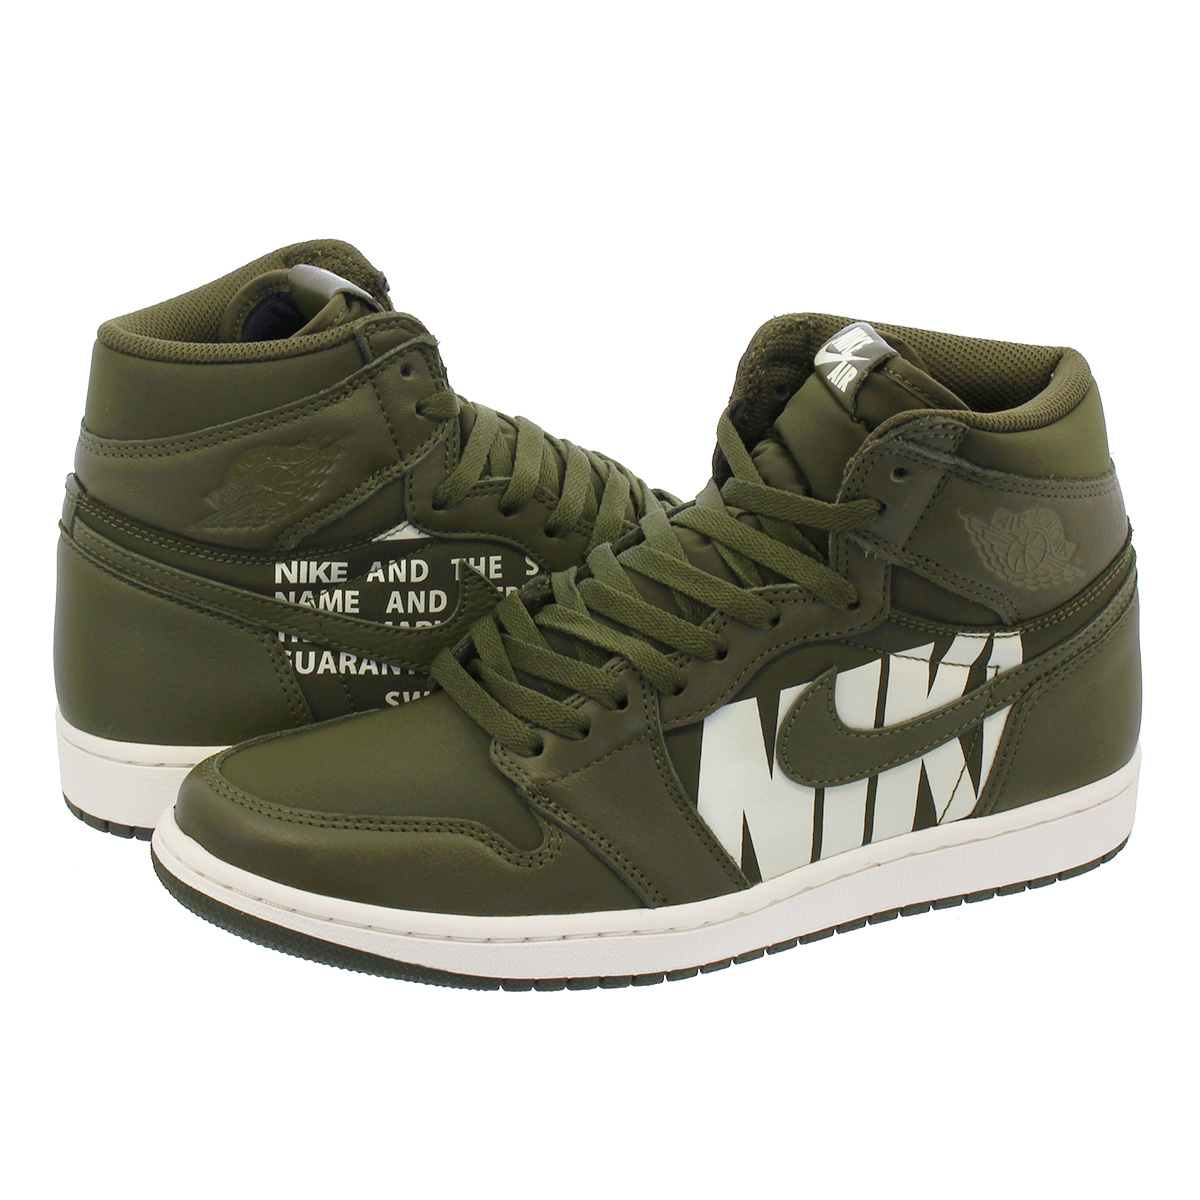 4a0c89072c2dae ... RETRO HIGH OG Nike Air Jordan 1 nostalgic high OG OLIVE CANVAS SAIL  555